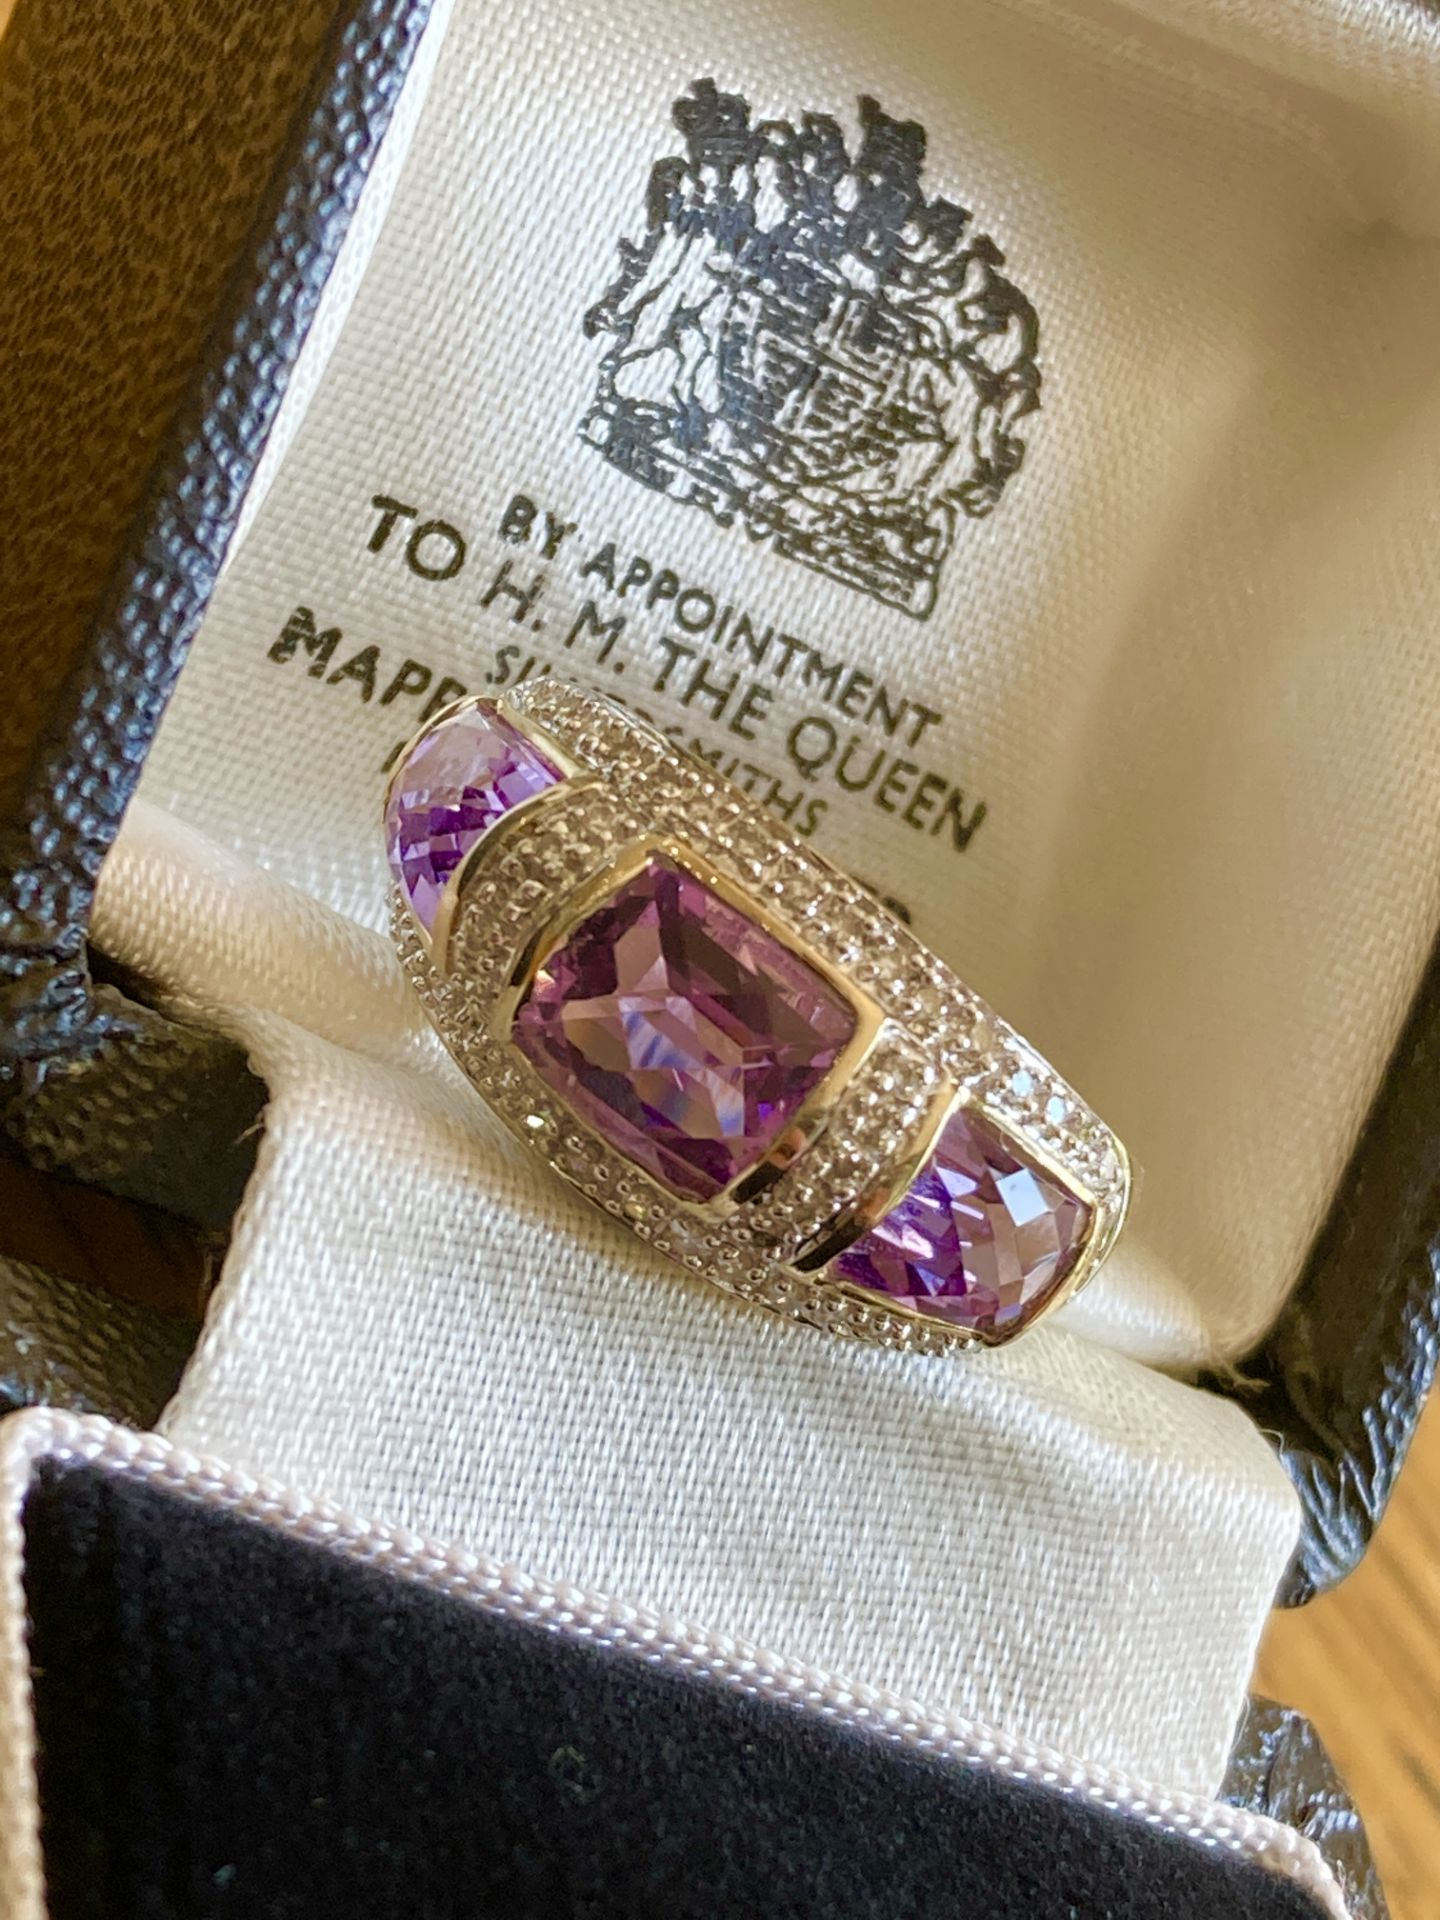 9CT YELLOW GOLD AMETHYST & DIAMOND RING - SIZE: S / WEIGHT: 3.5G - Image 7 of 9